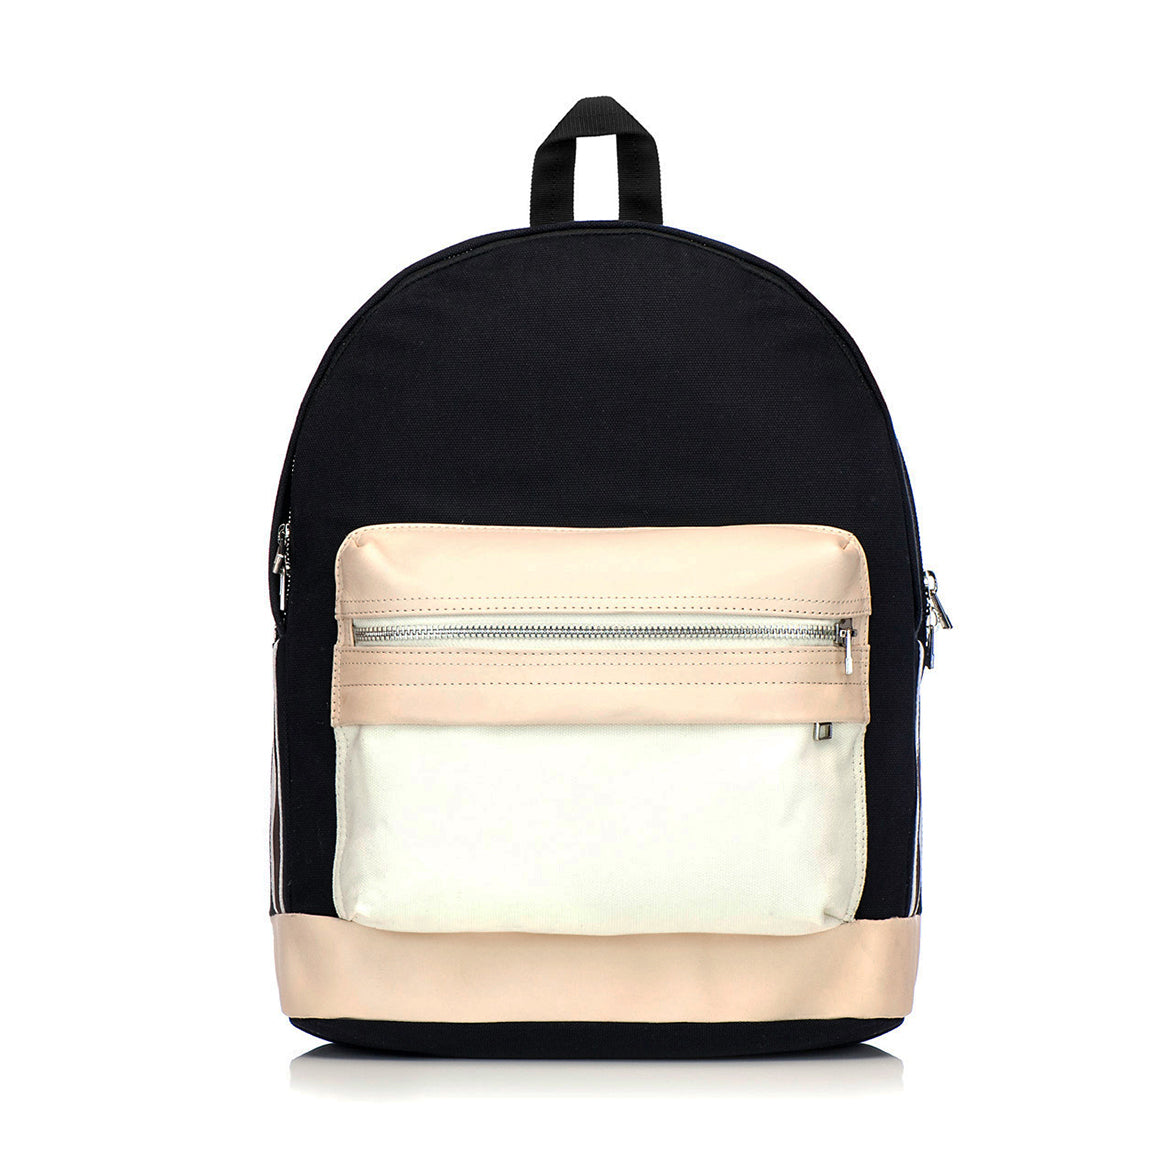 LANCER BACKPACK 80% COTTON 20% LEATHER - BLACK/VEGTAN